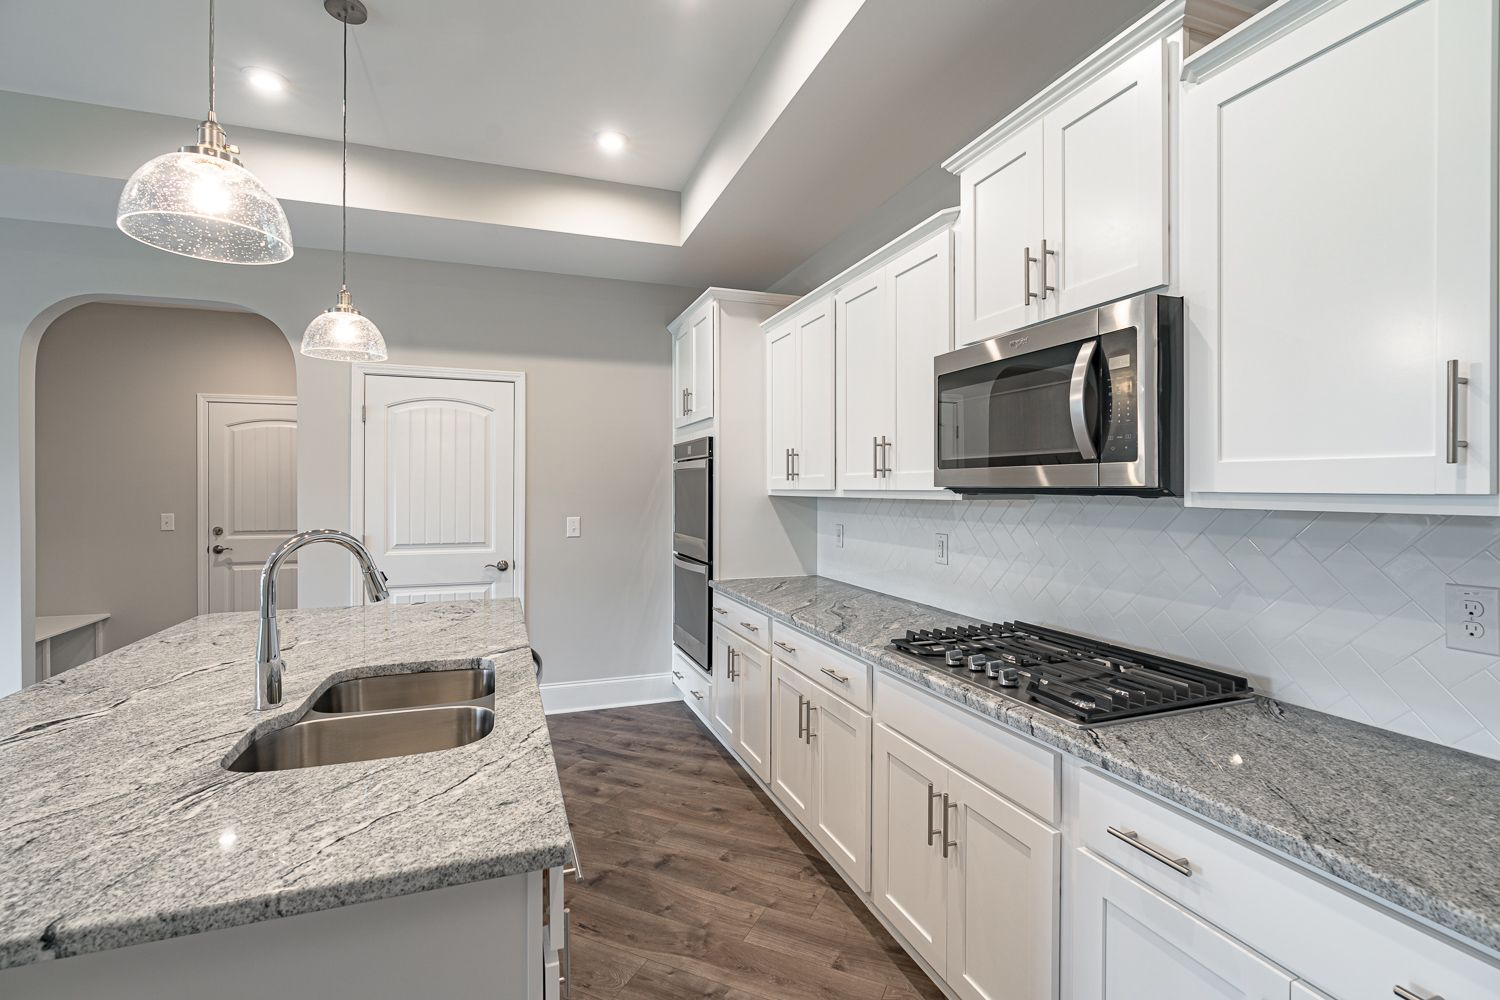 Kitchen featured in the Promenade Craftsman By McKee Homes in Wilmington, NC